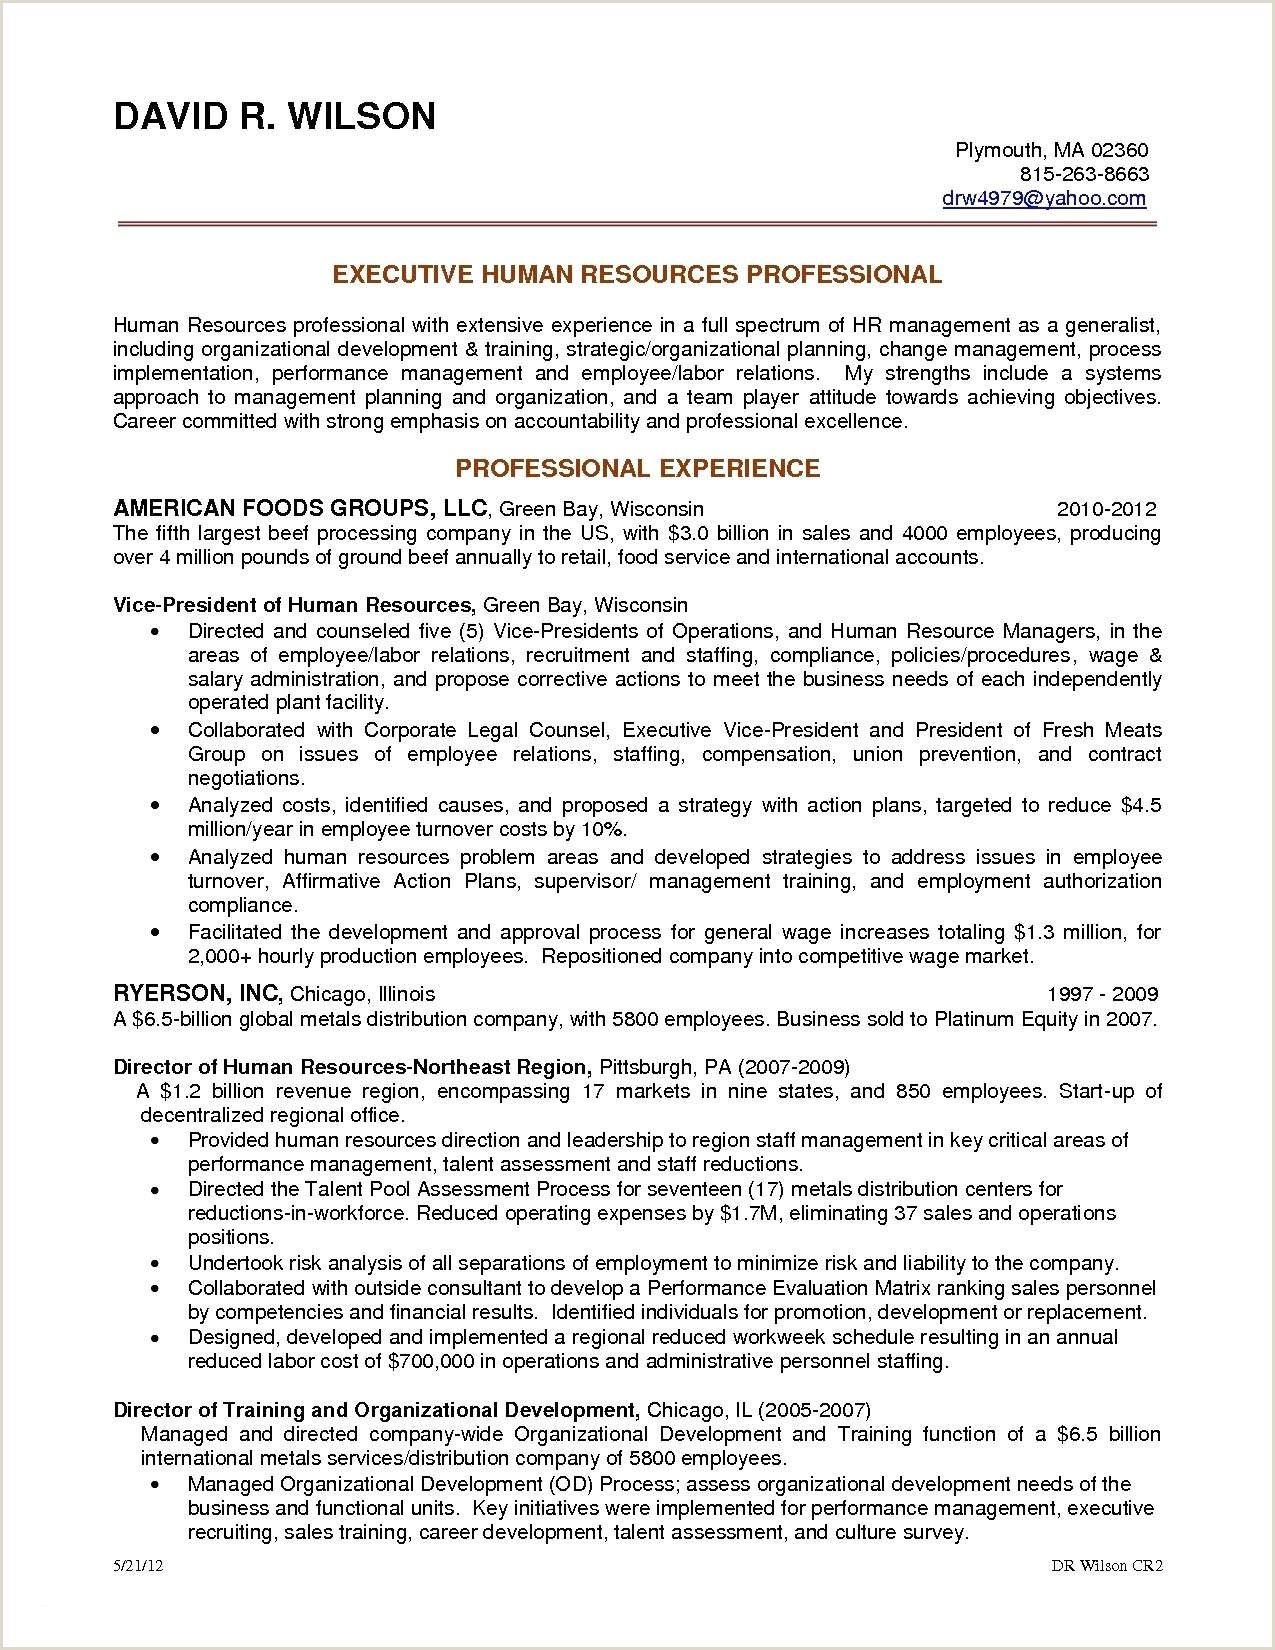 Human Resources Manager Resume Human Resources Manager